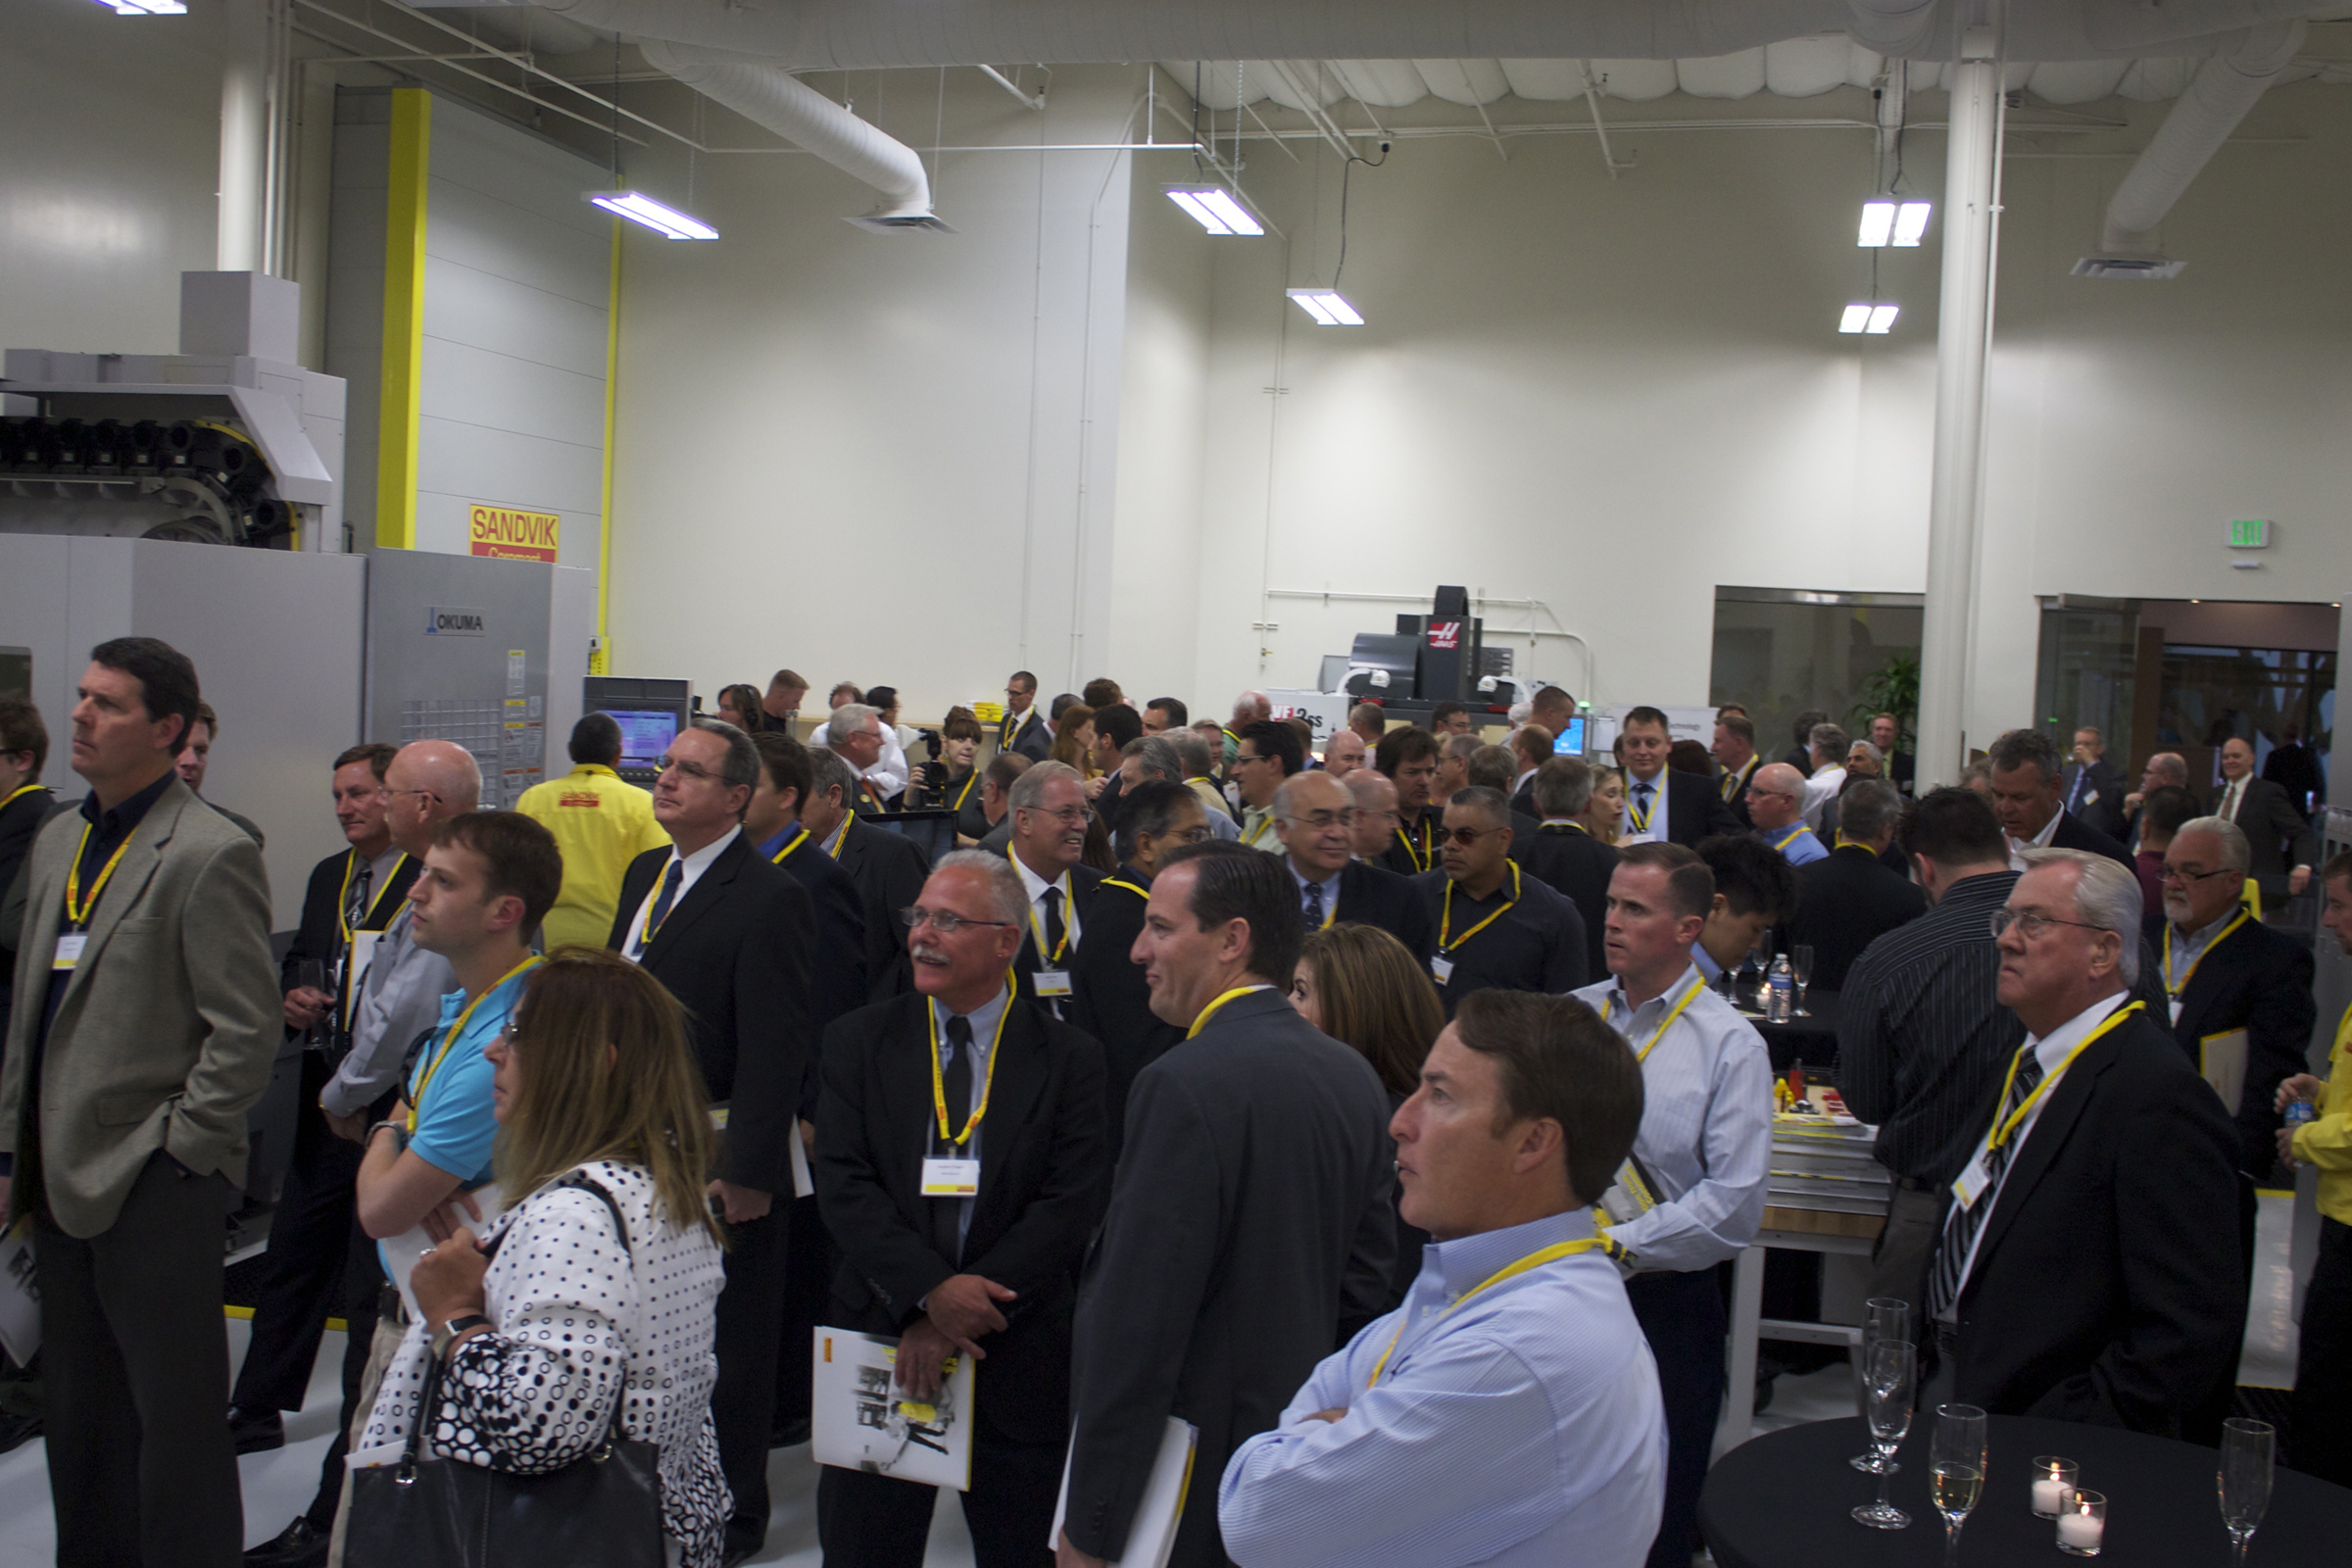 Pictured - Attendees watching a live machine demonstration during the grand opening of the Cypress, California facility.